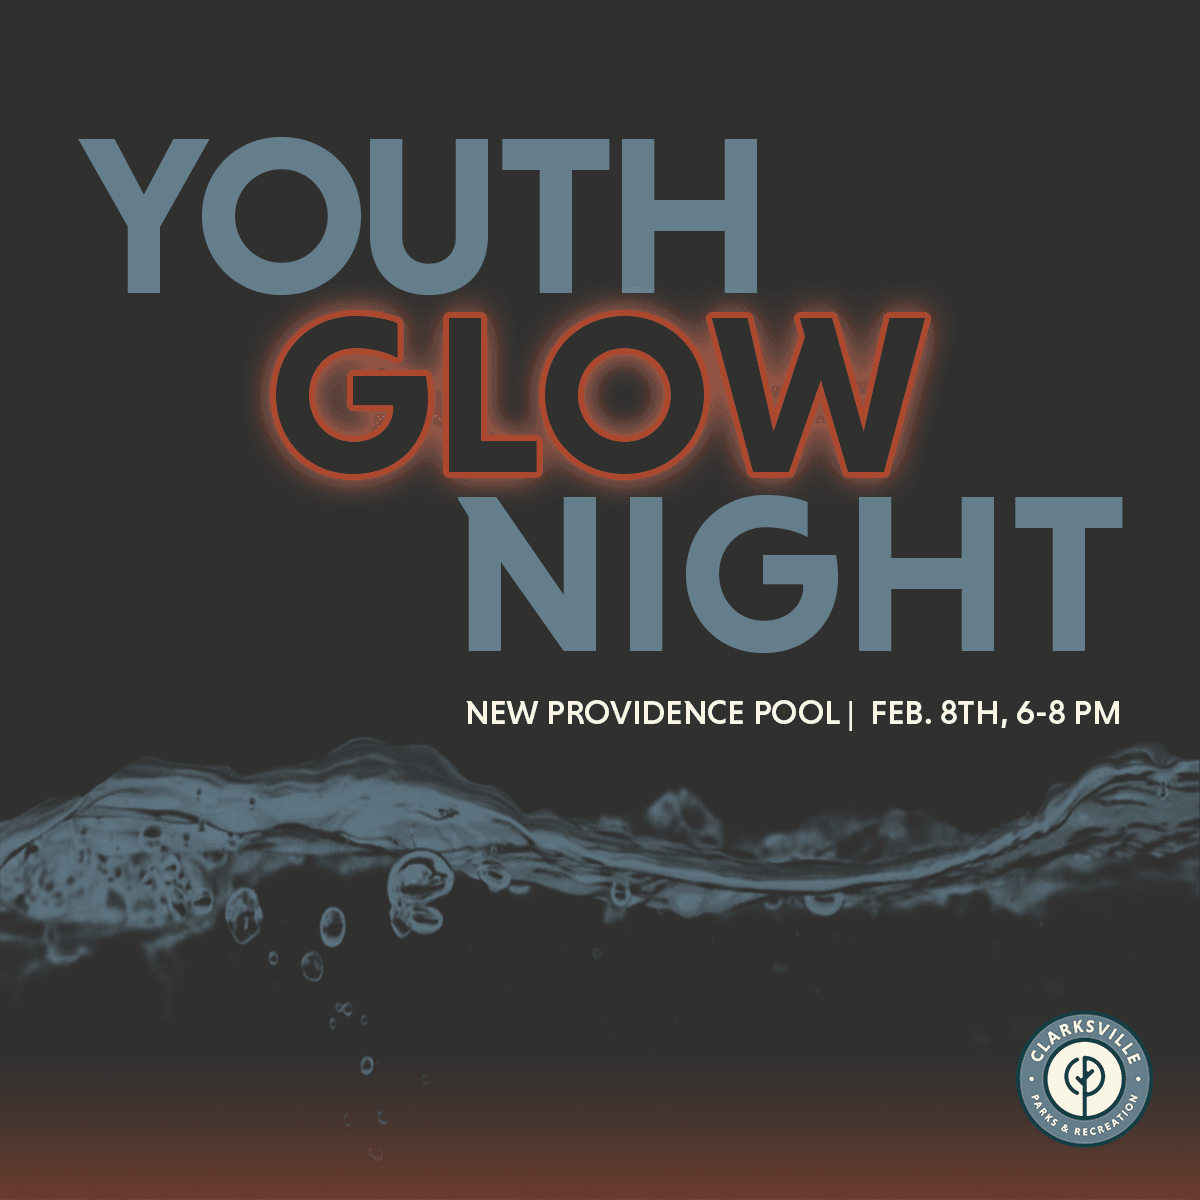 Youth Glow Night